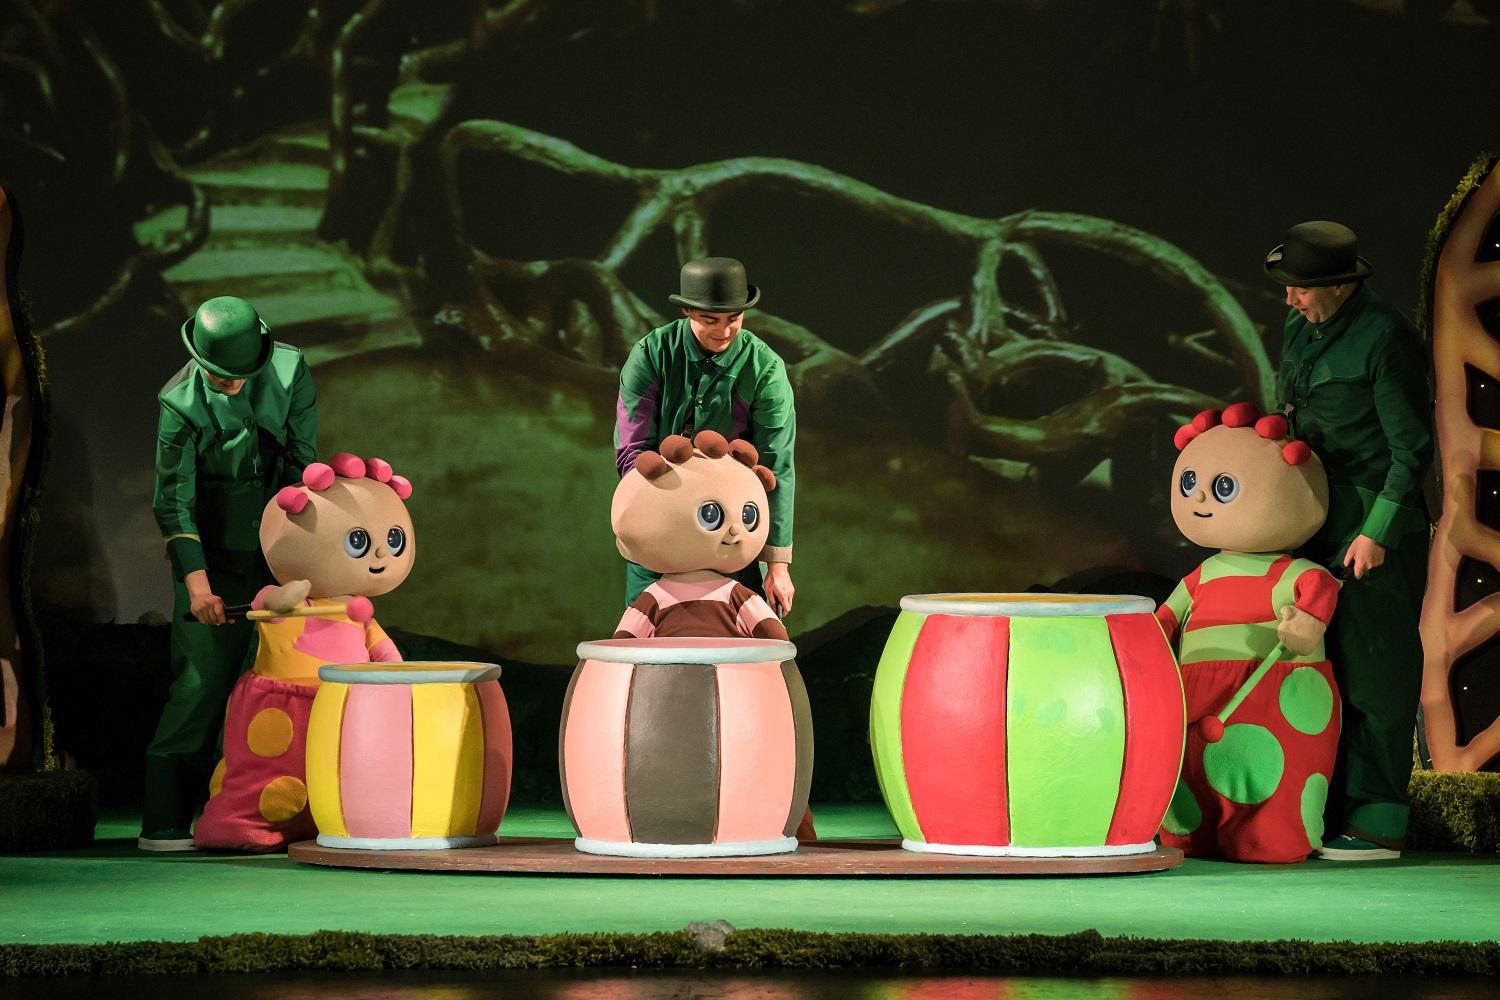 Image of the Tombliboos playing the drums